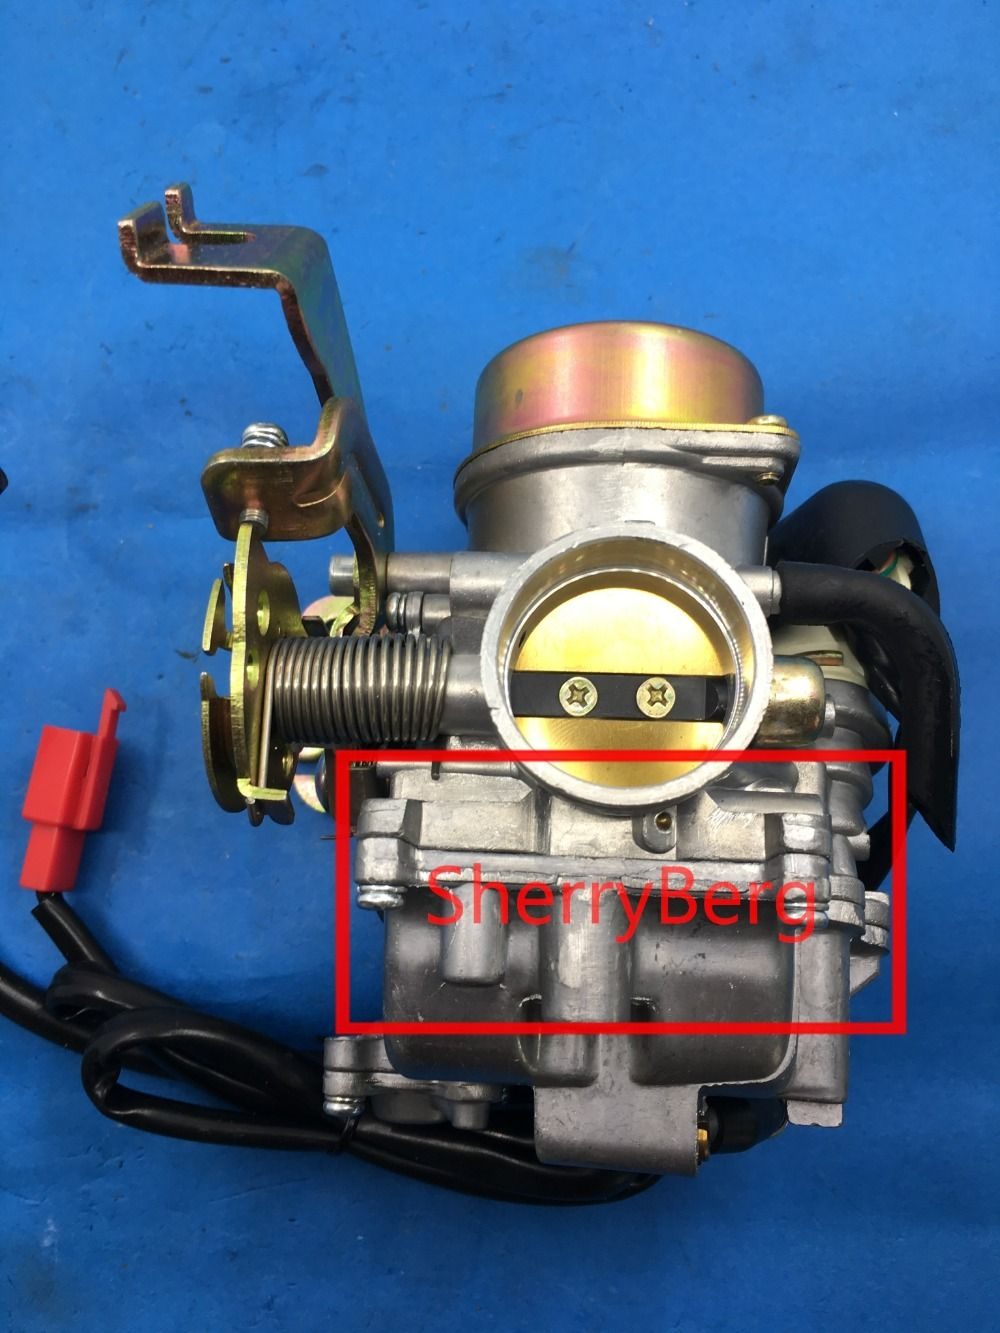 New 32mm Performance Cvk32 Carburetor Carb For 150cc 125cc 200cc 250cc 300cc 350cc Gy6 Atv For Yamaha Honda Ktm Suzuki 150cc Atv Honda